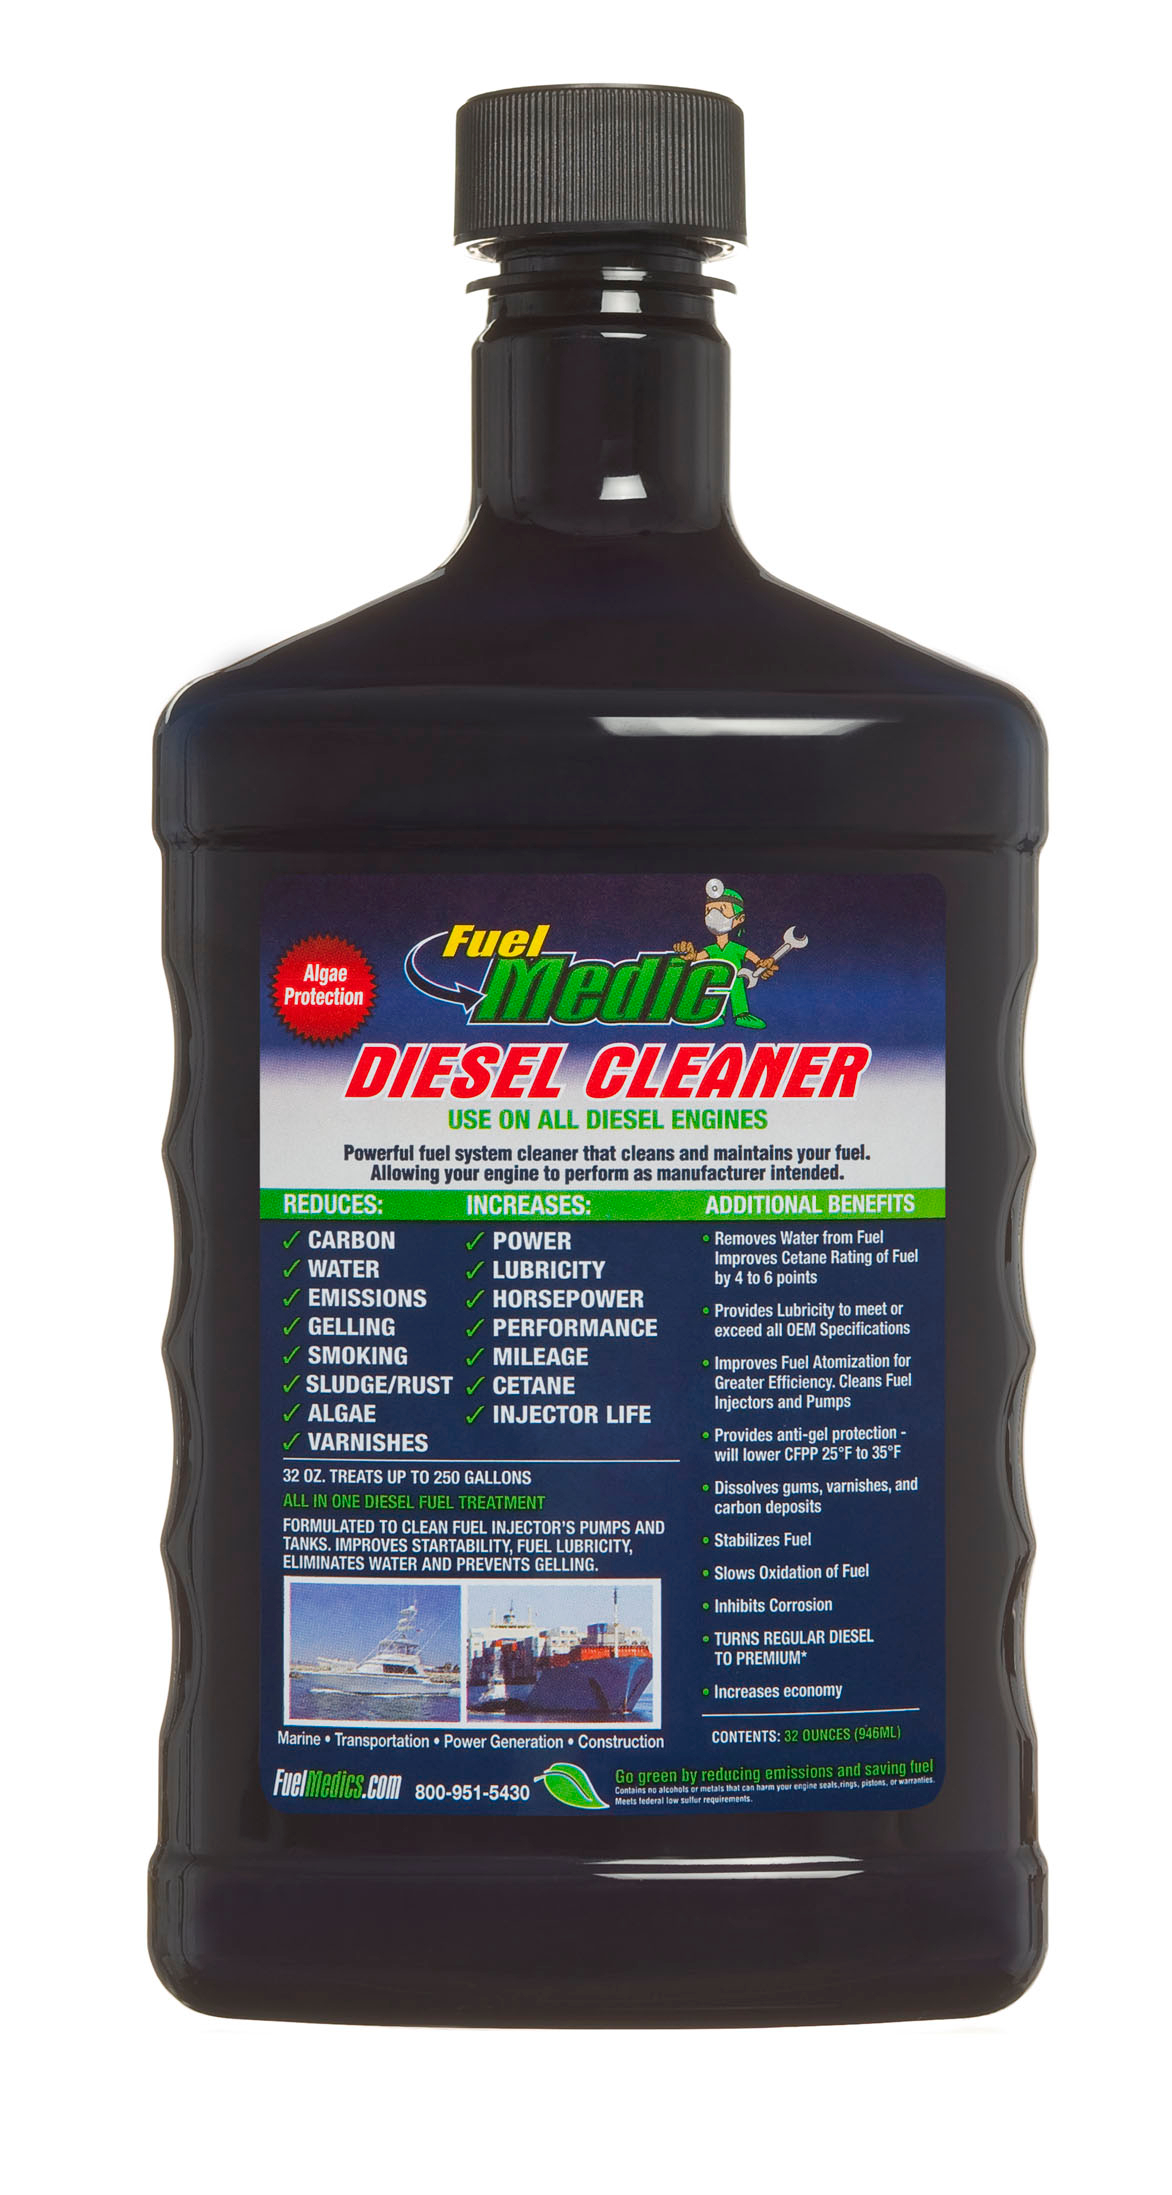 DIESEL CLEANER BUNDDLE